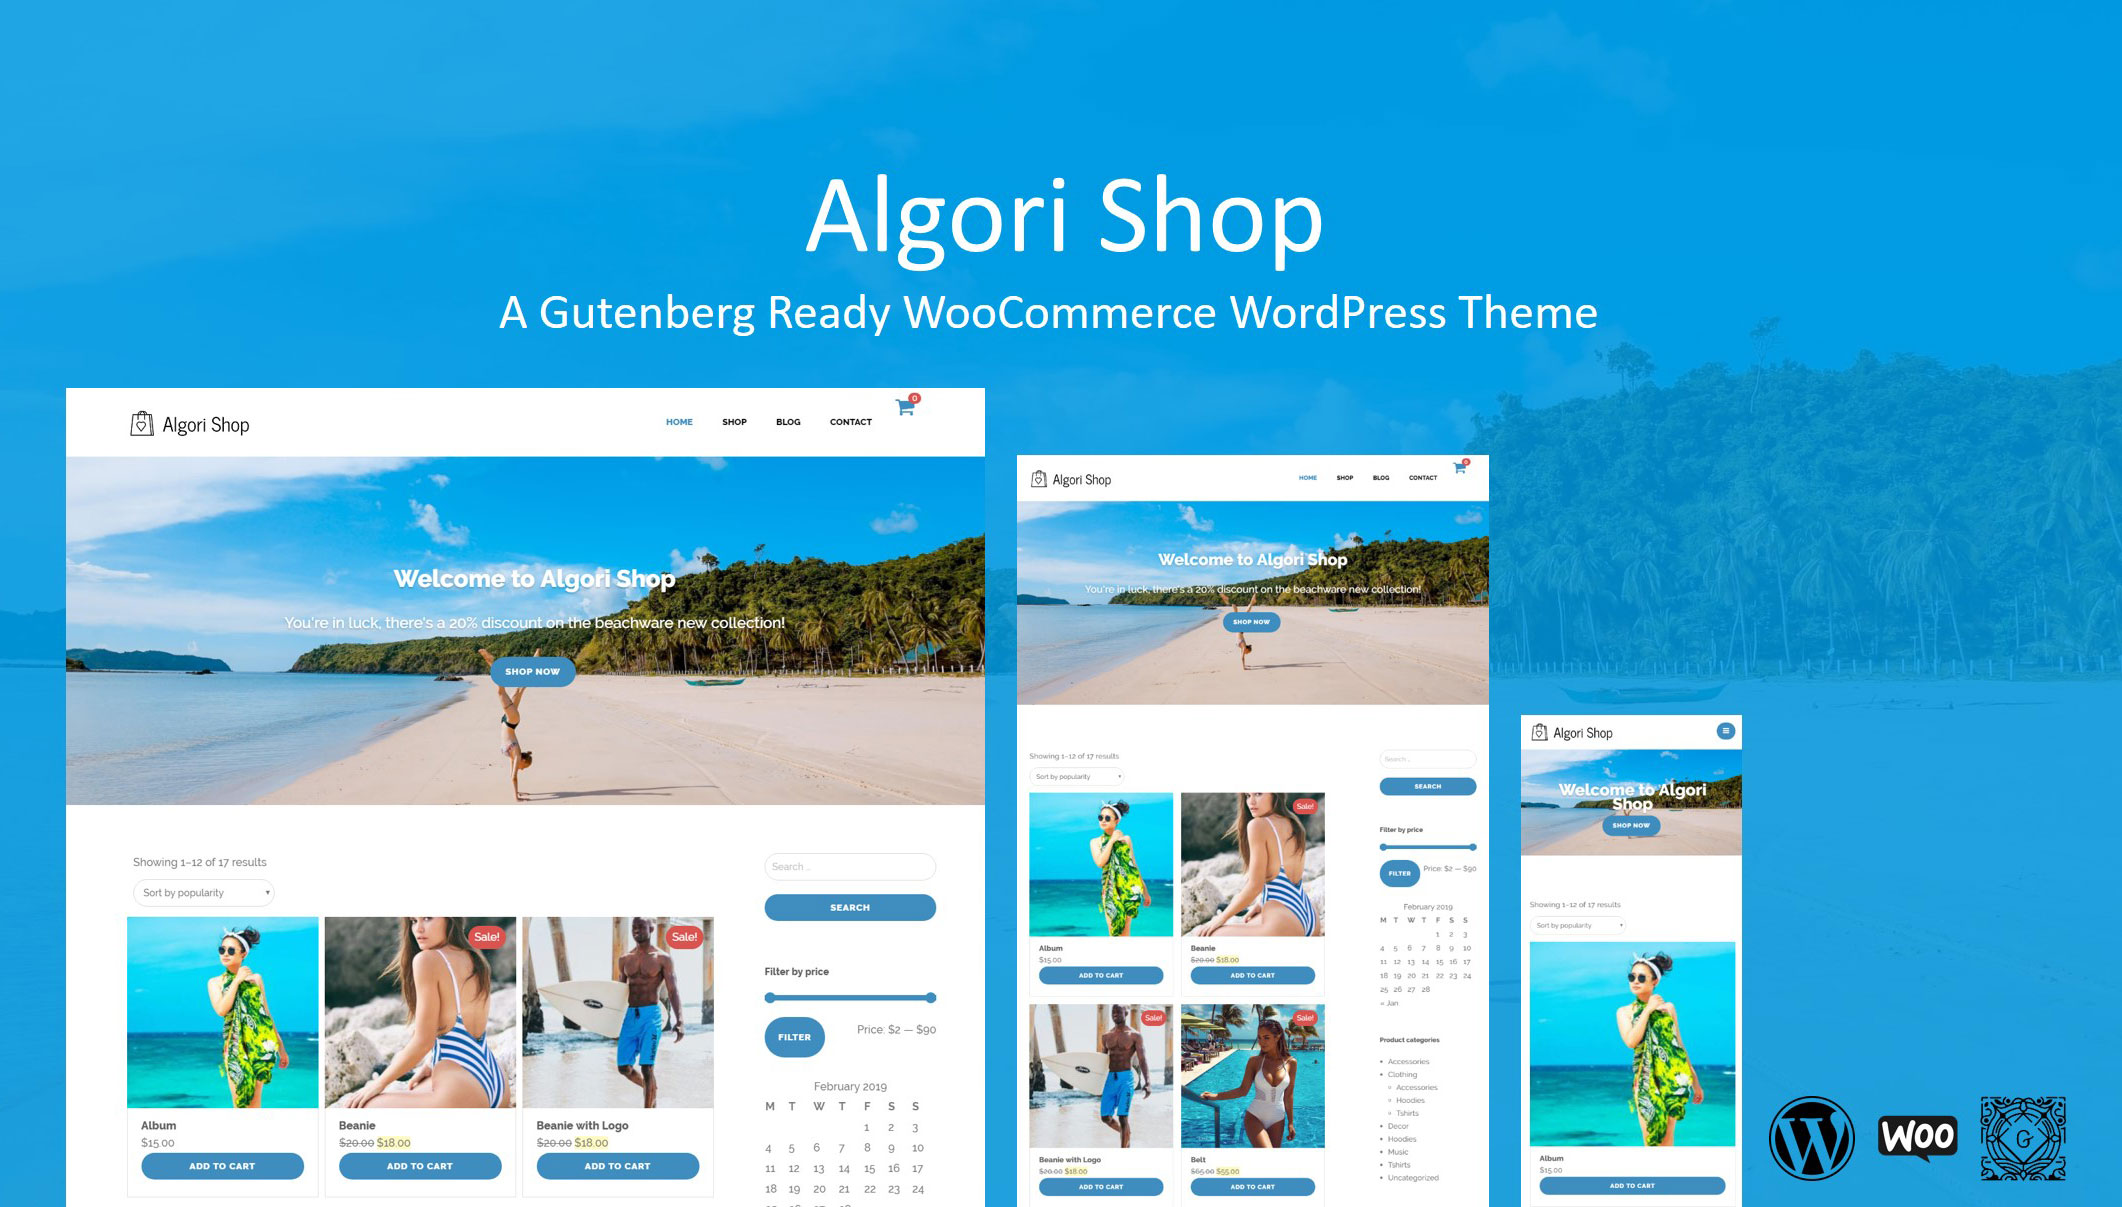 Algori Shop Gutenberg Ready WooCommerce WordPress Theme